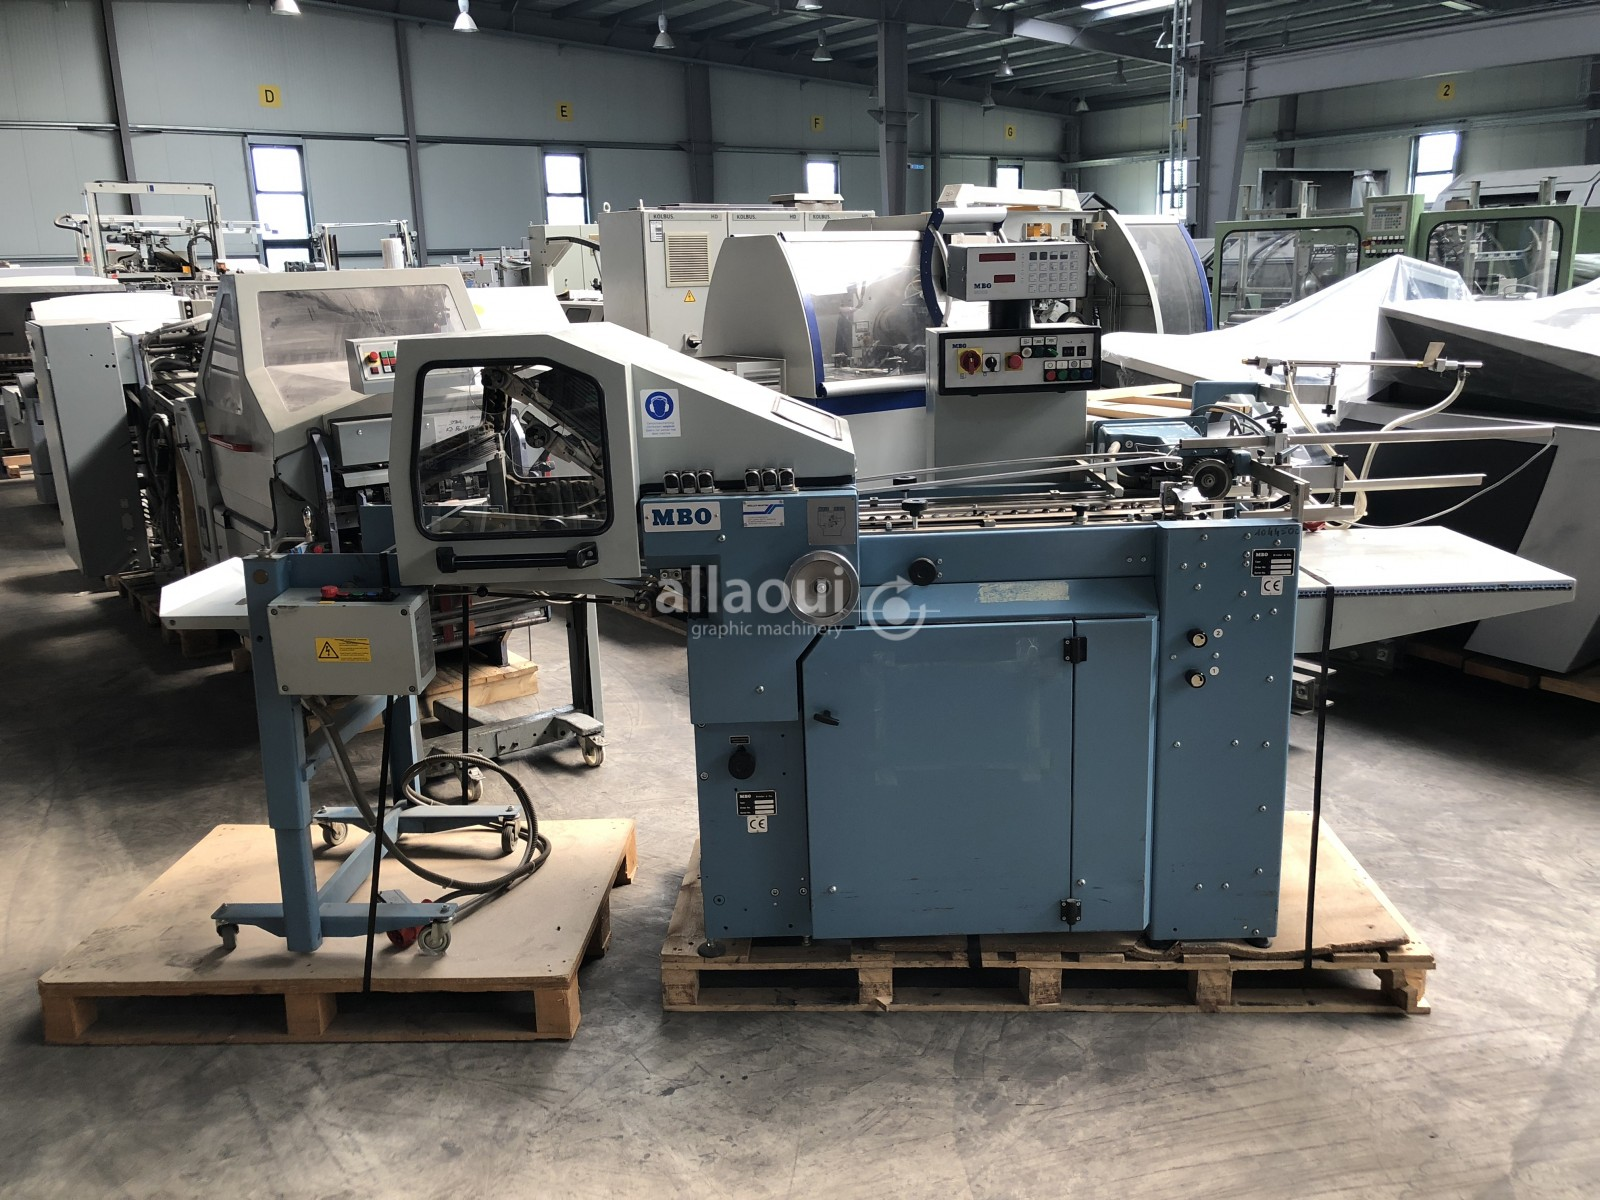 MBO T 500-4 + A56 Picture 1